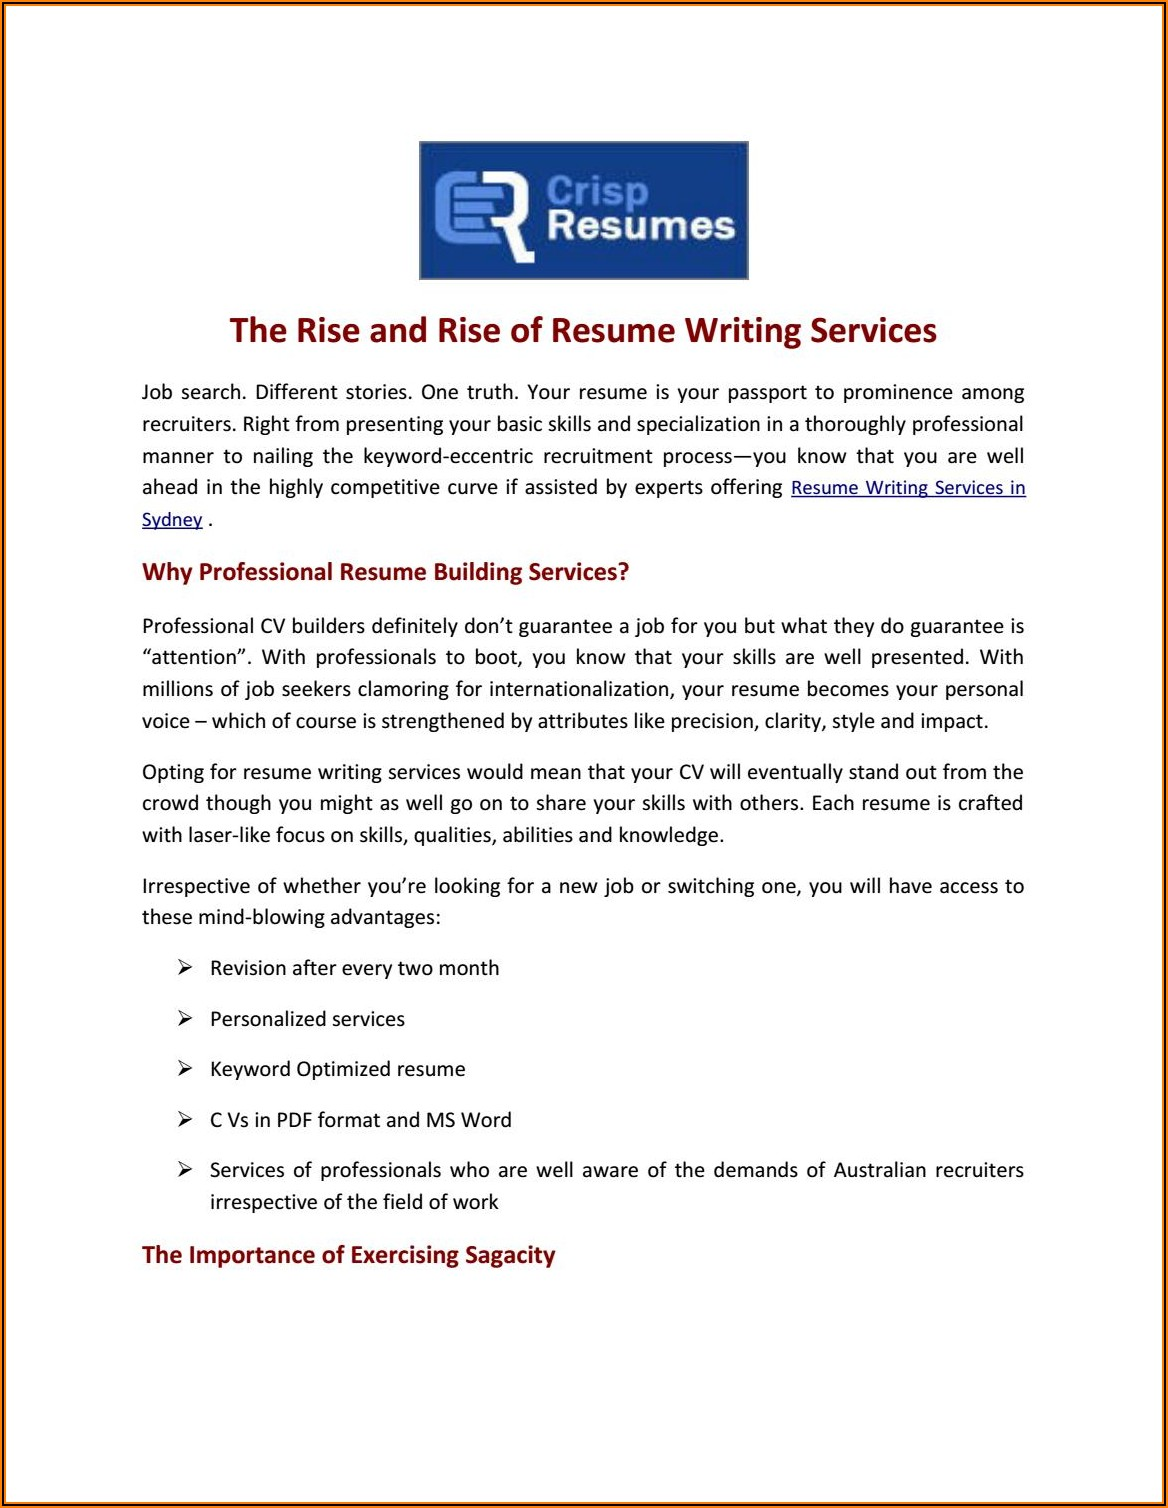 Resume Writing Services Sydney Reviews